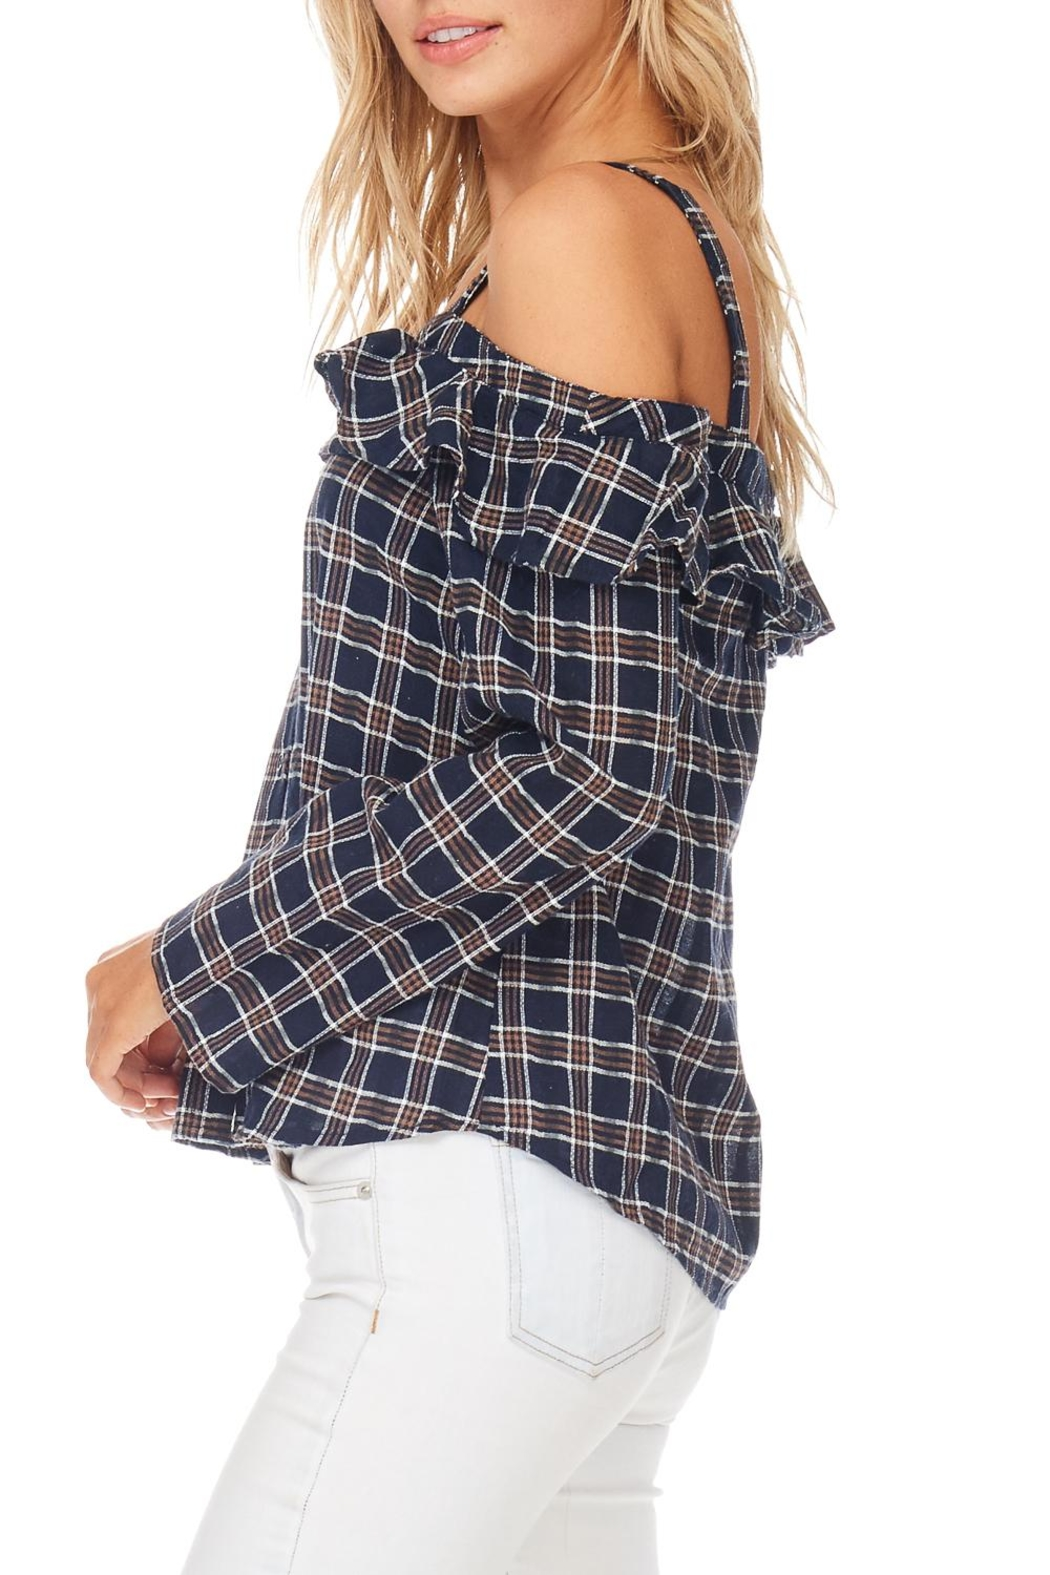 LoveRiche Plaid Ruffle Top - Back Cropped Image